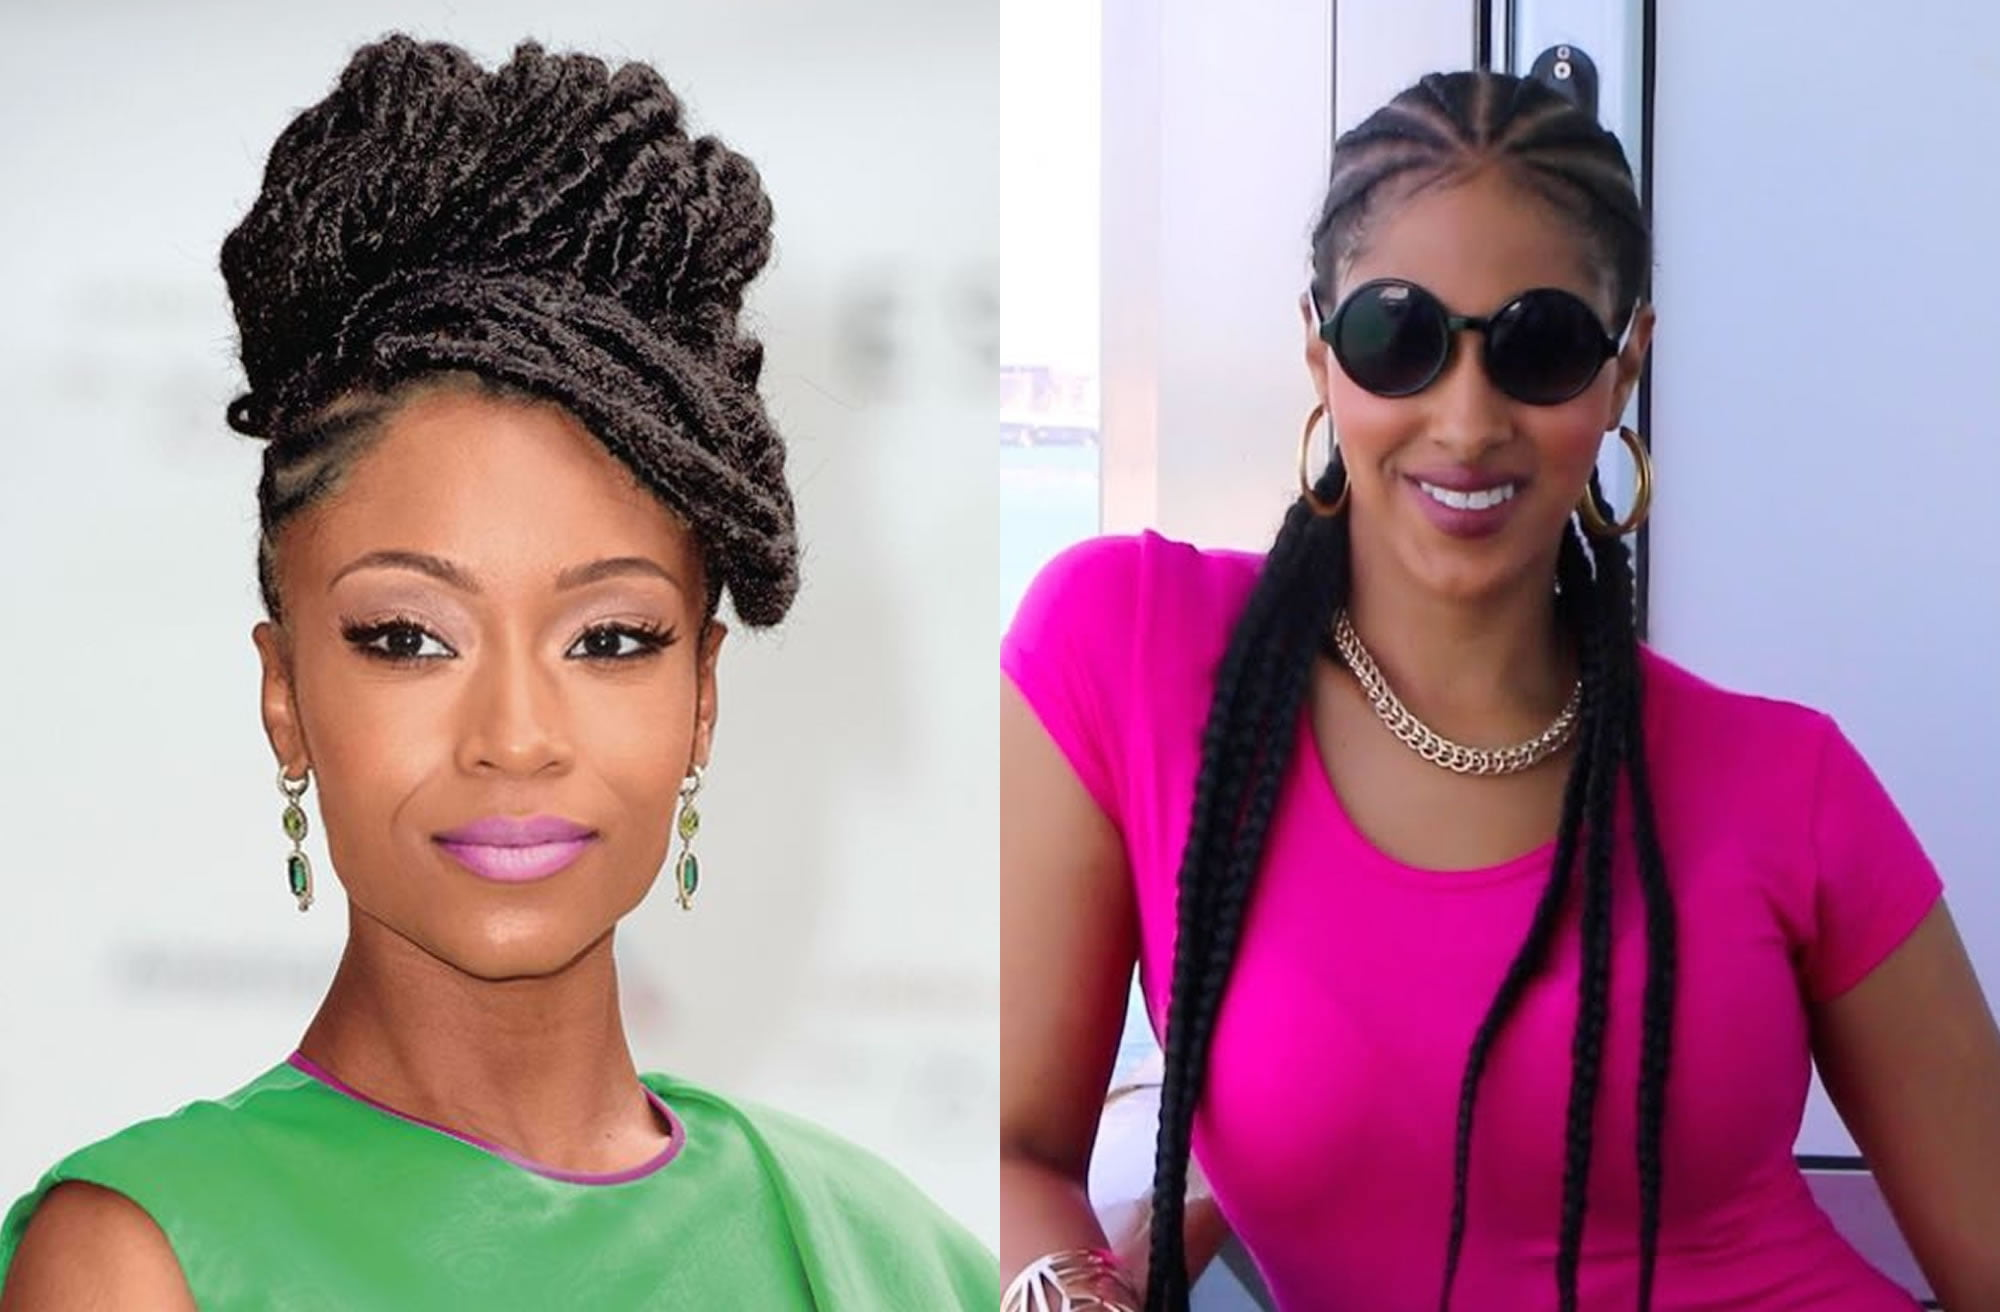 Hairstyles 2019: Braided Hairstyles For Black Women 2018-2019 Latest Hair